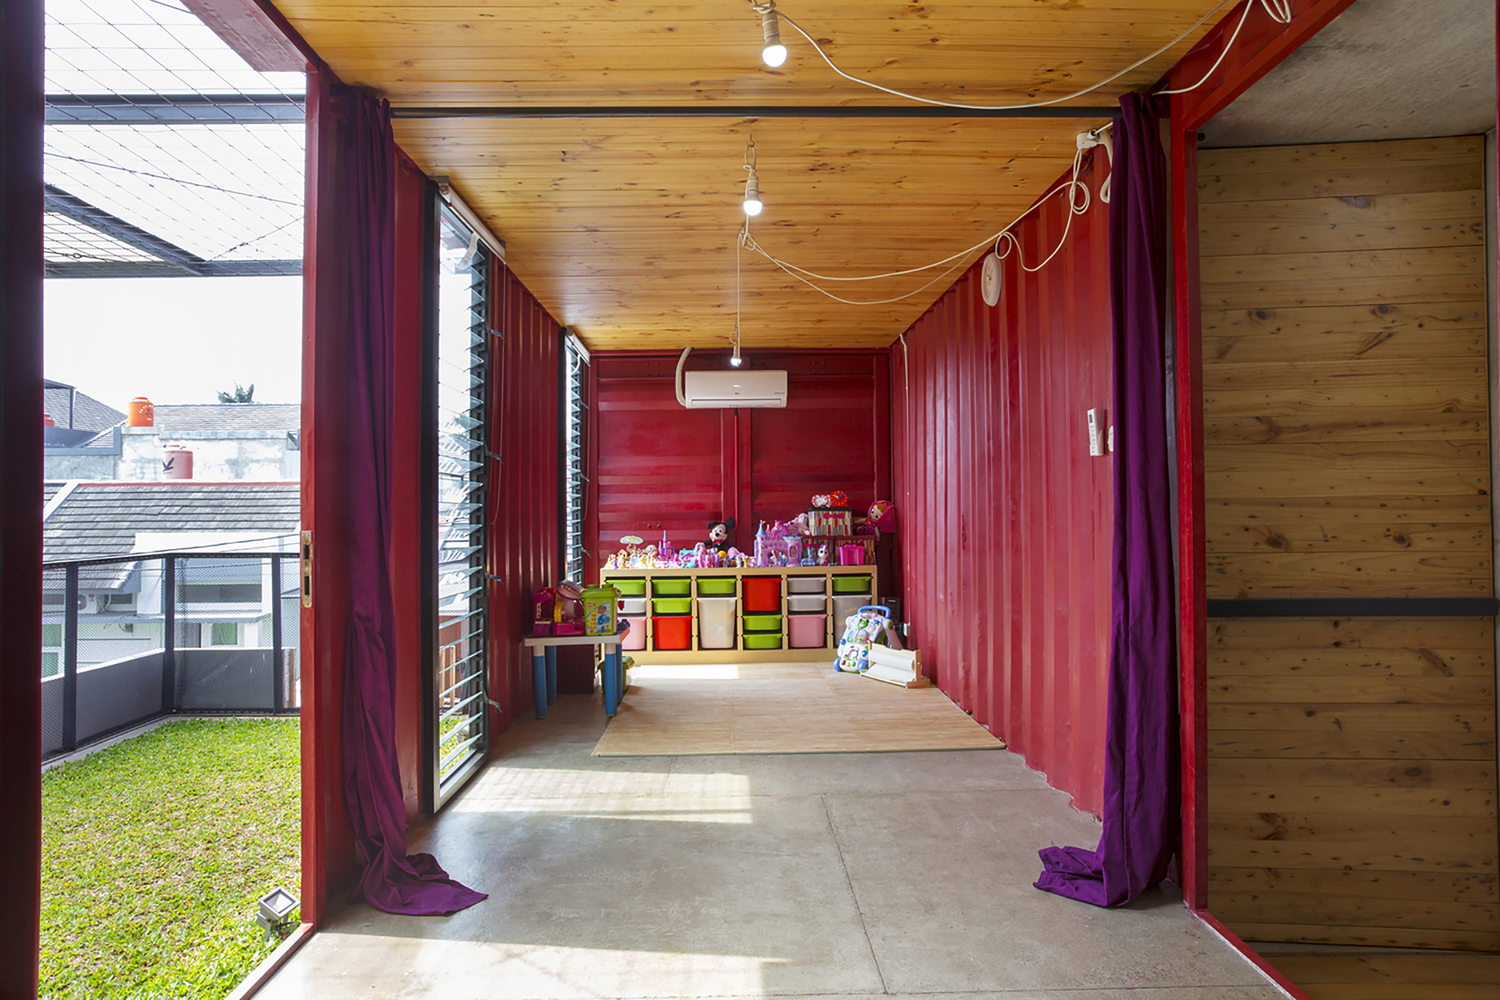 RS_DWELLING_09_copy